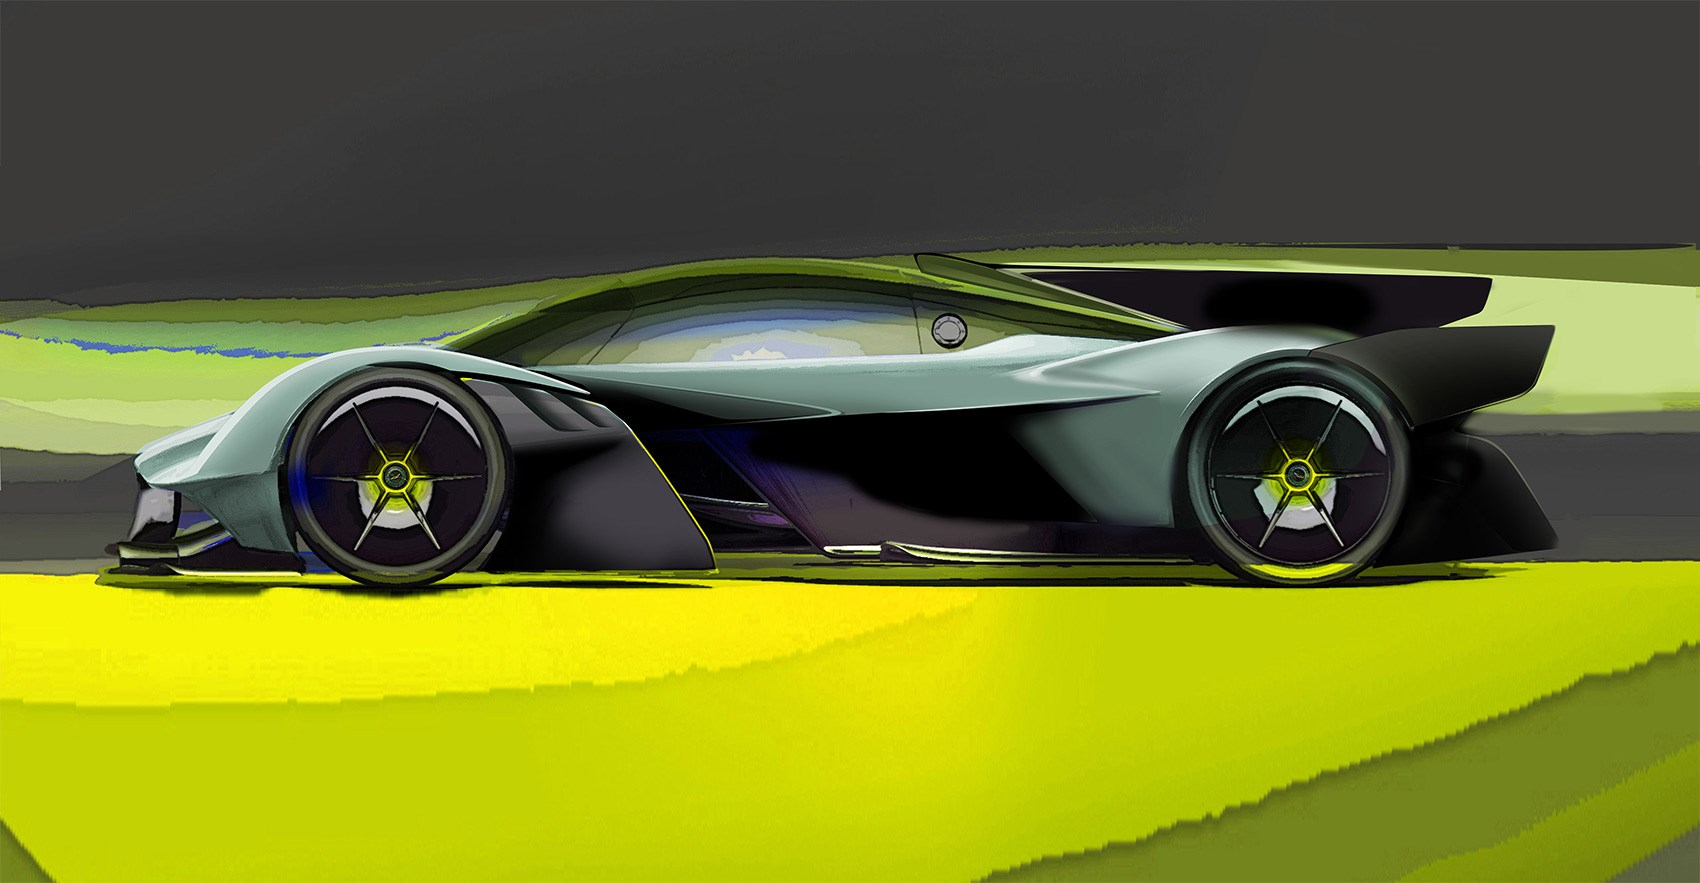 aston martin valkyrie amr pro revealed in pictures | car magazine